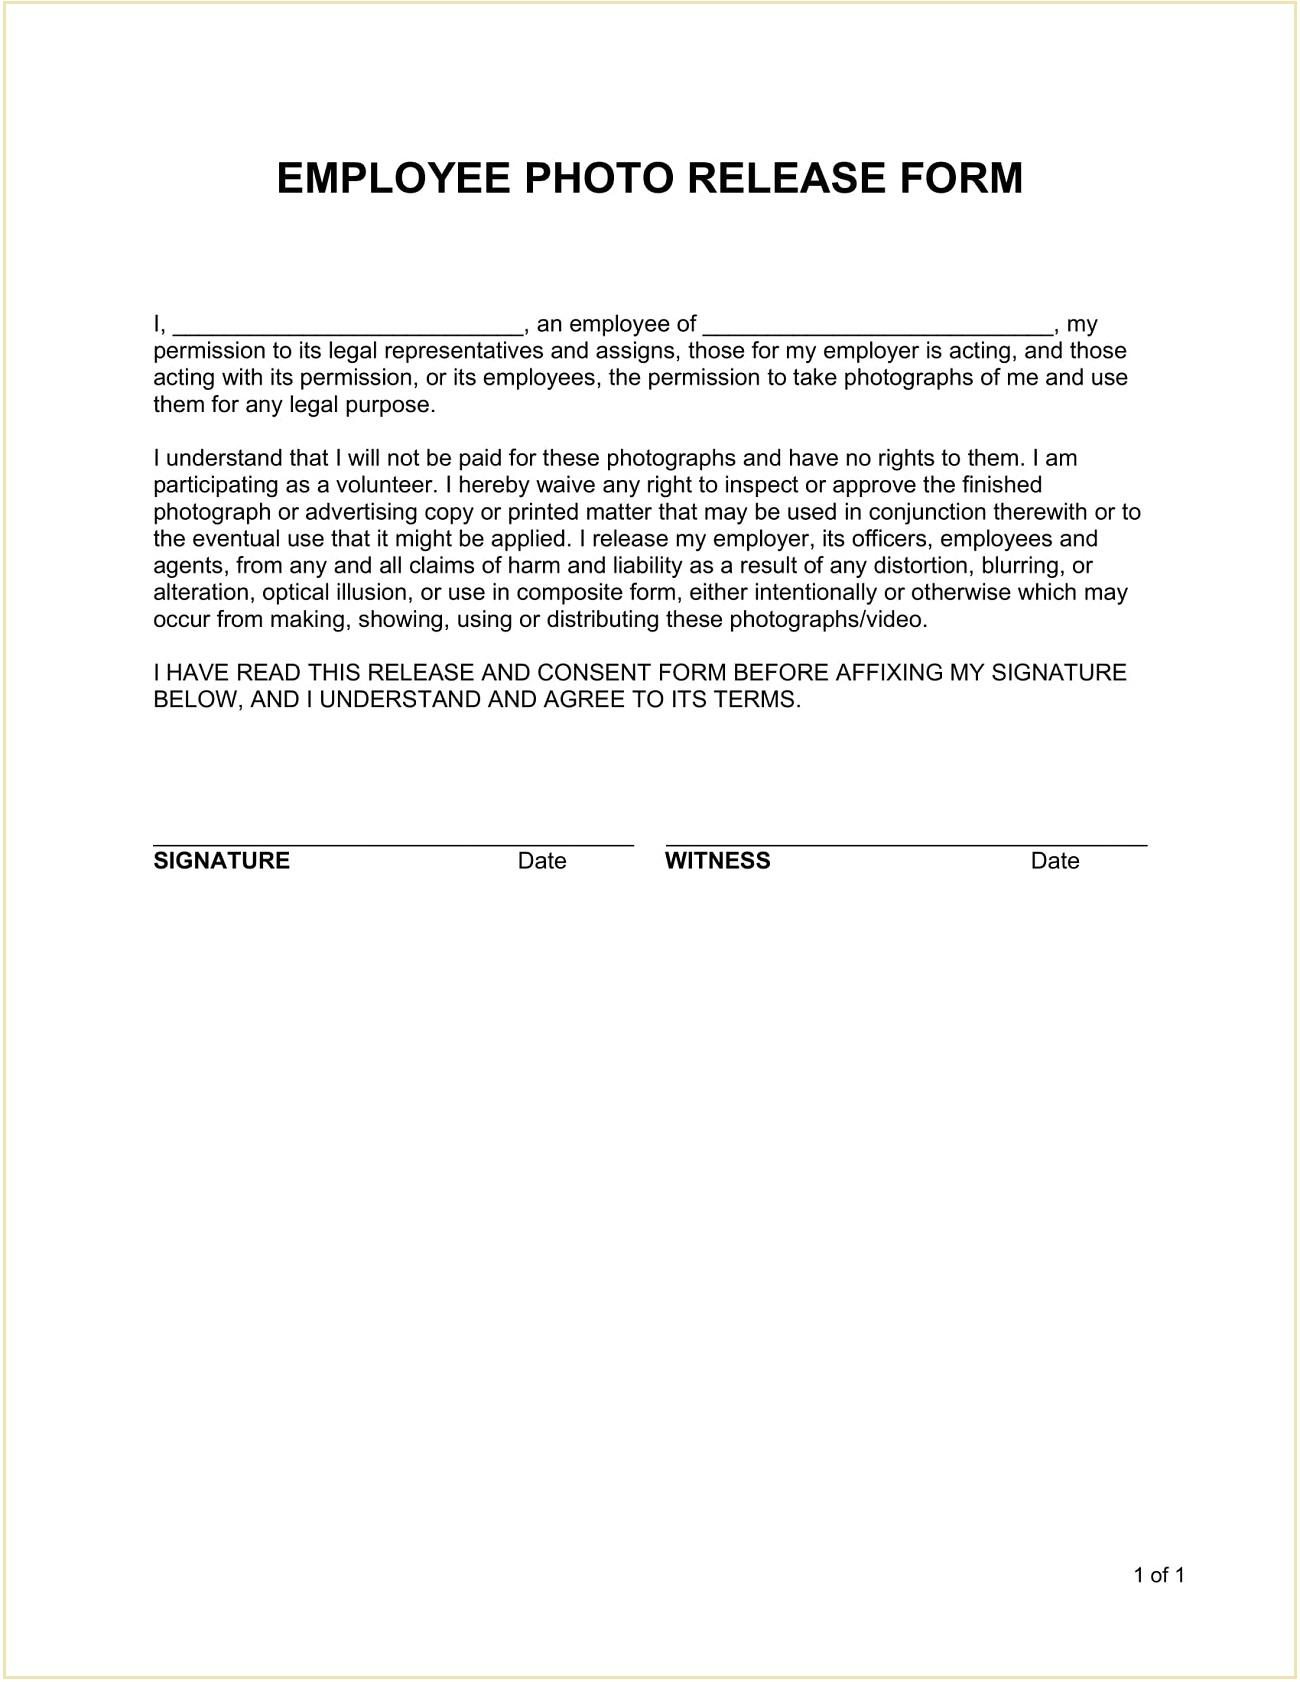 Employee Photo Release Form Template Word